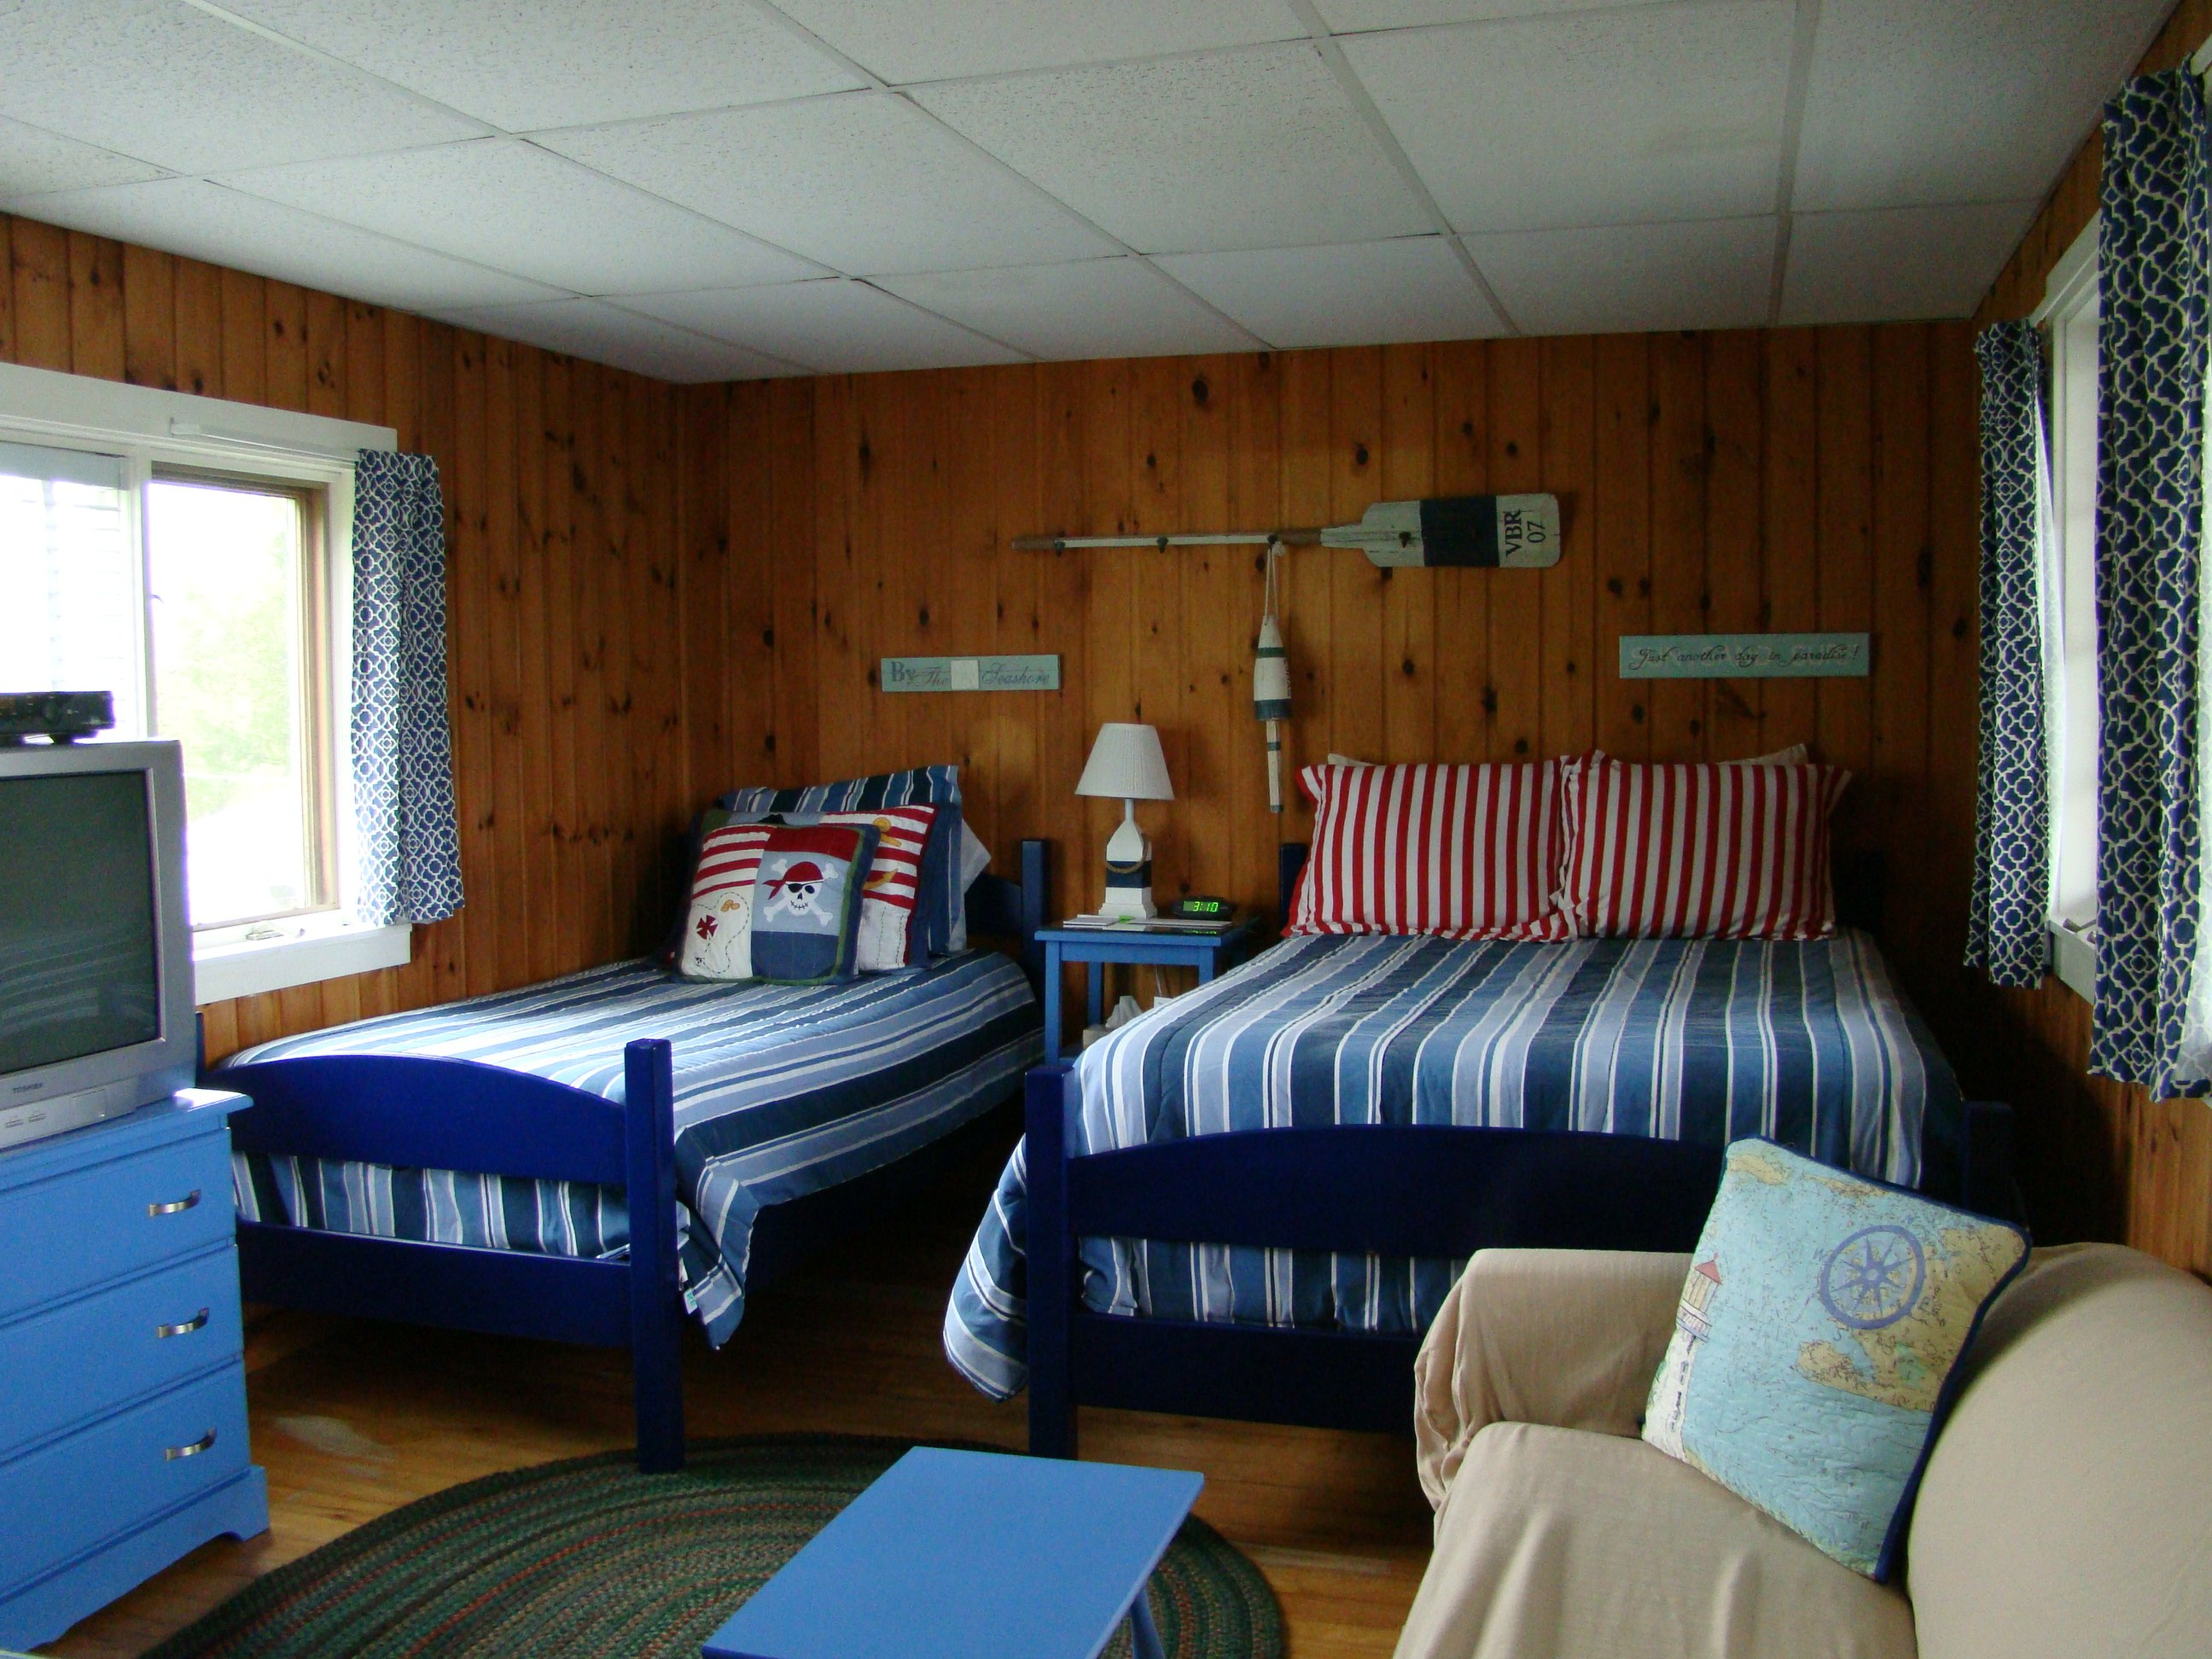 Motel room #18 and 19 - full bed, twin bed, full sleeper sofa, TV, refrigerator, microwave, coffeemaker